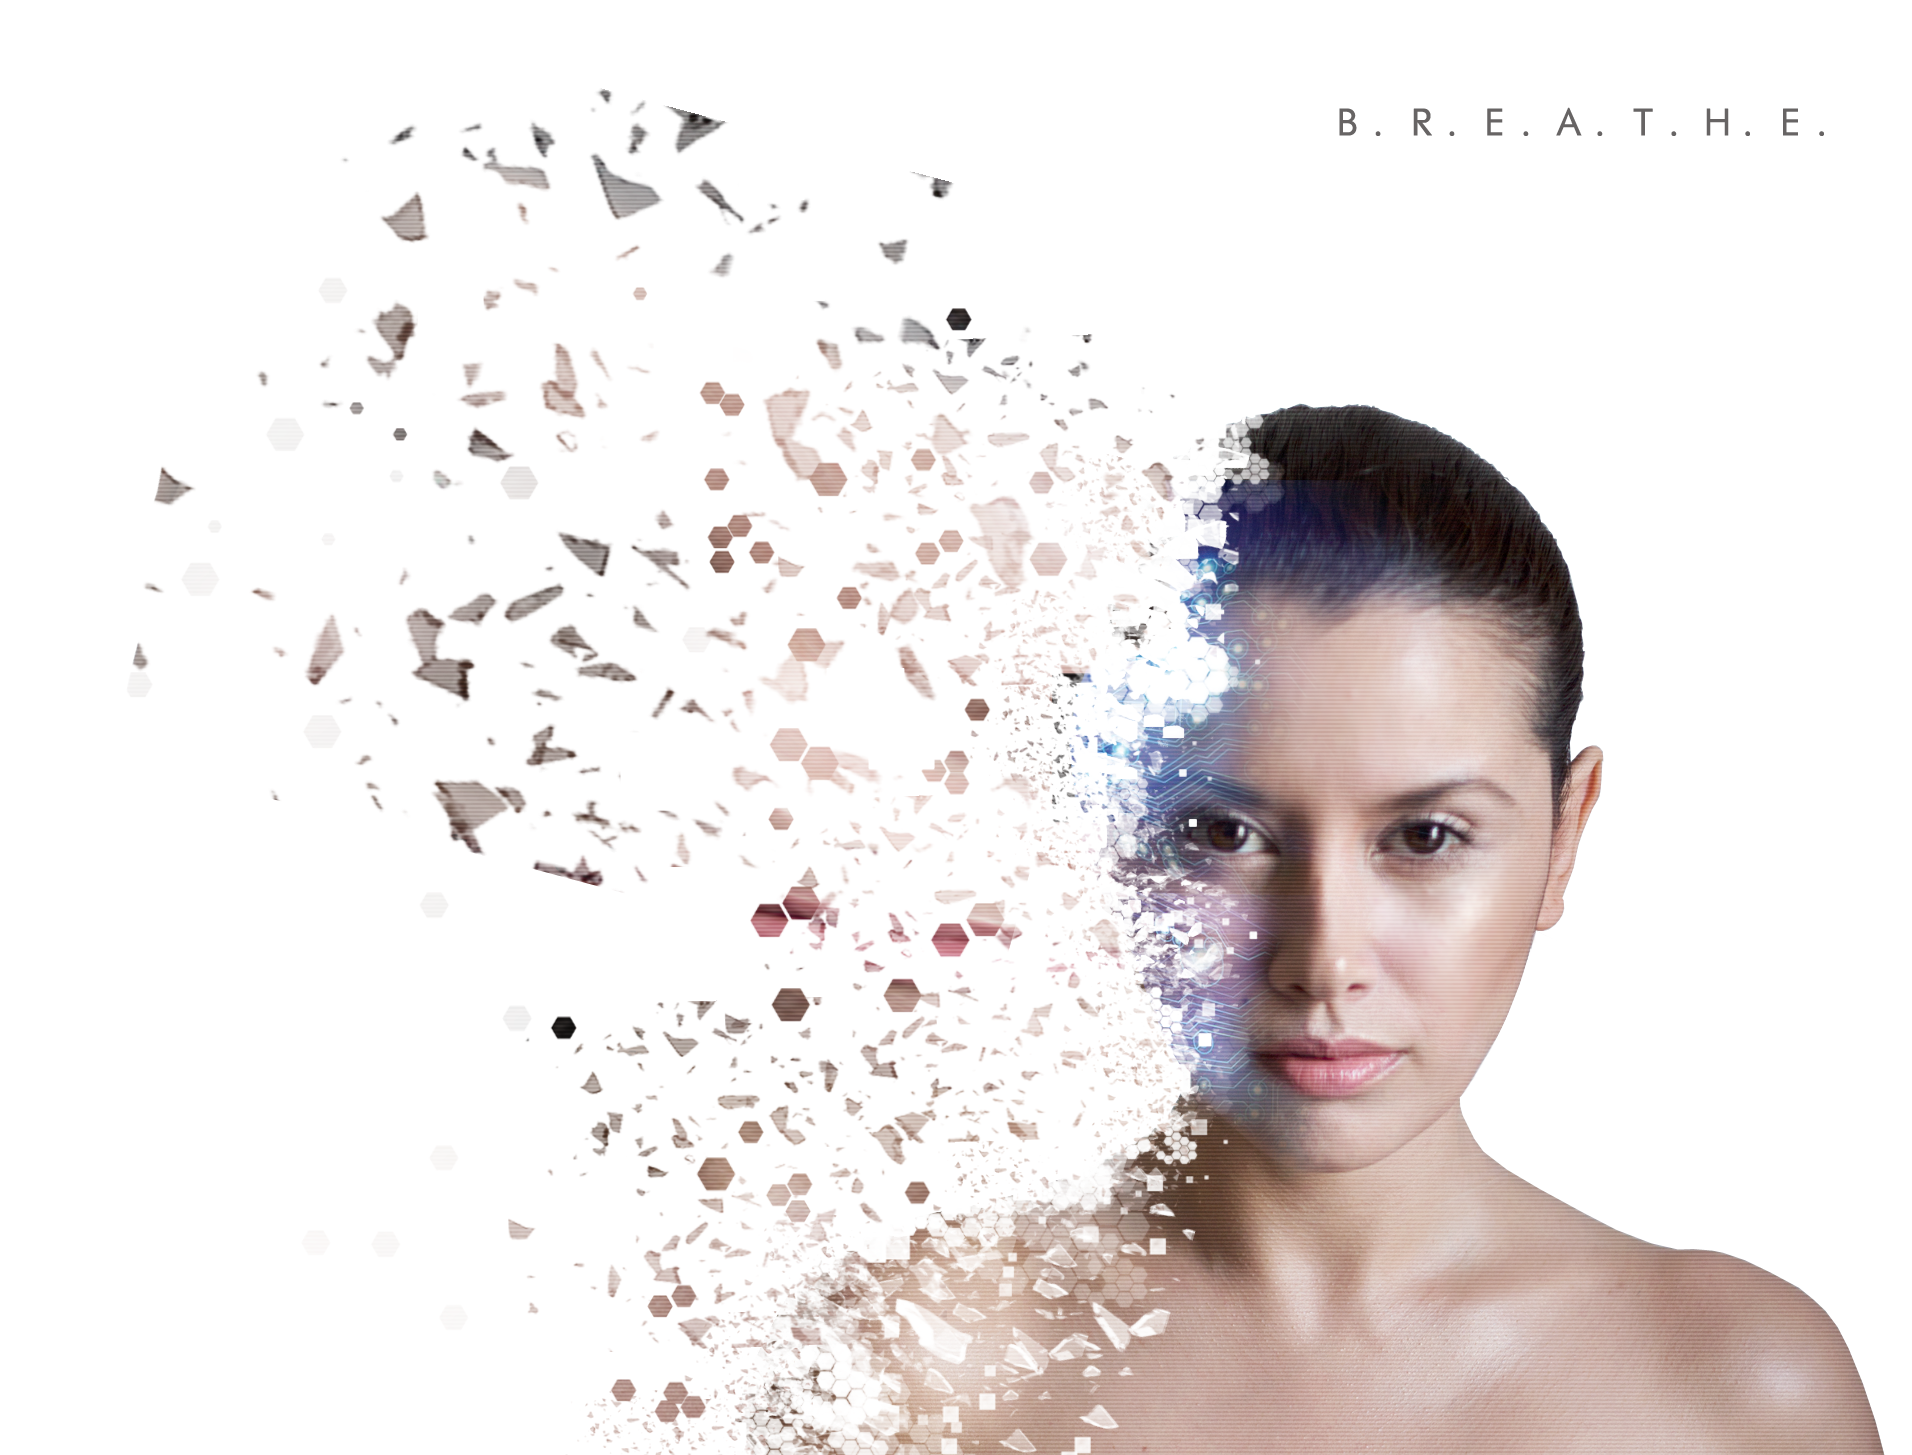 Image -  Talent: Annette Melton Make-up: Sandra Wograndl Photography: Cisco Corea  Photoshop: Jonathon Han